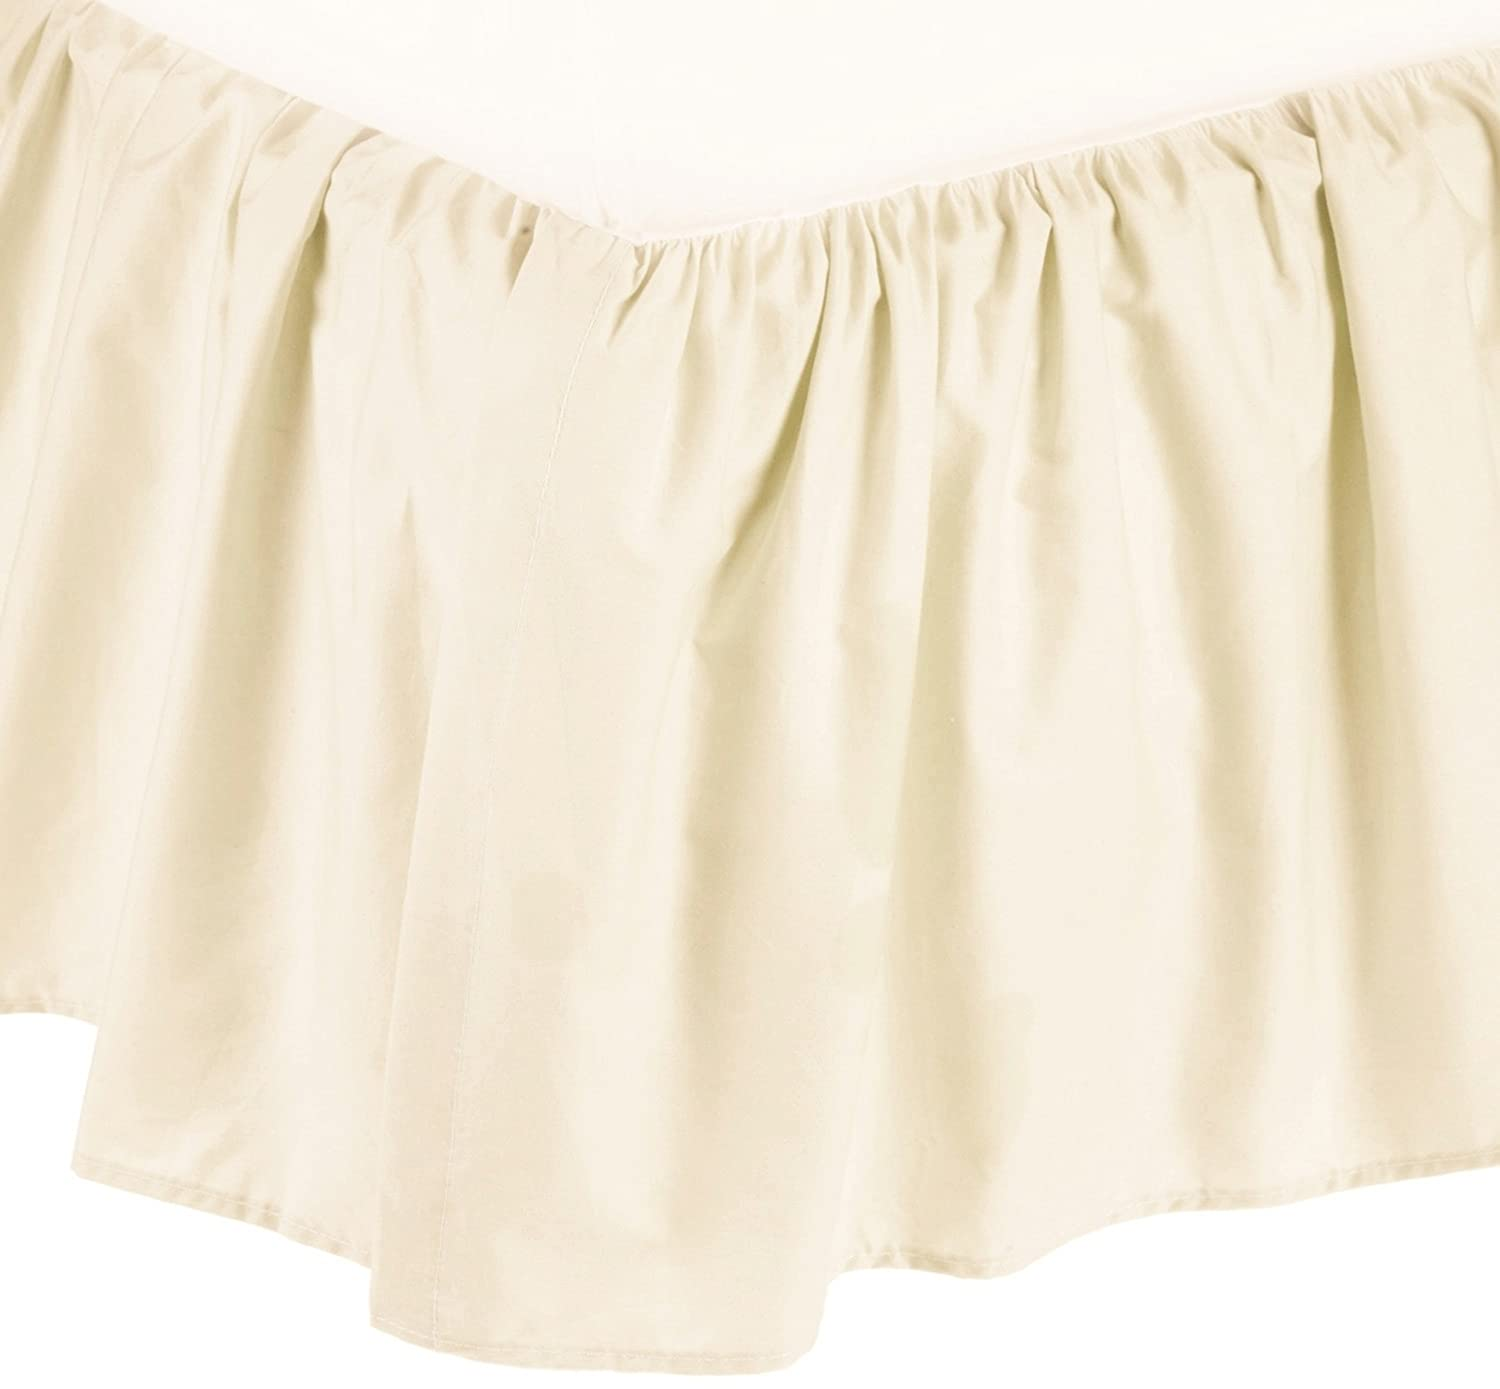 American Baby Company 100% Cotton Percale Portable Mini Crib Skirt, Ecru 161-Ecru